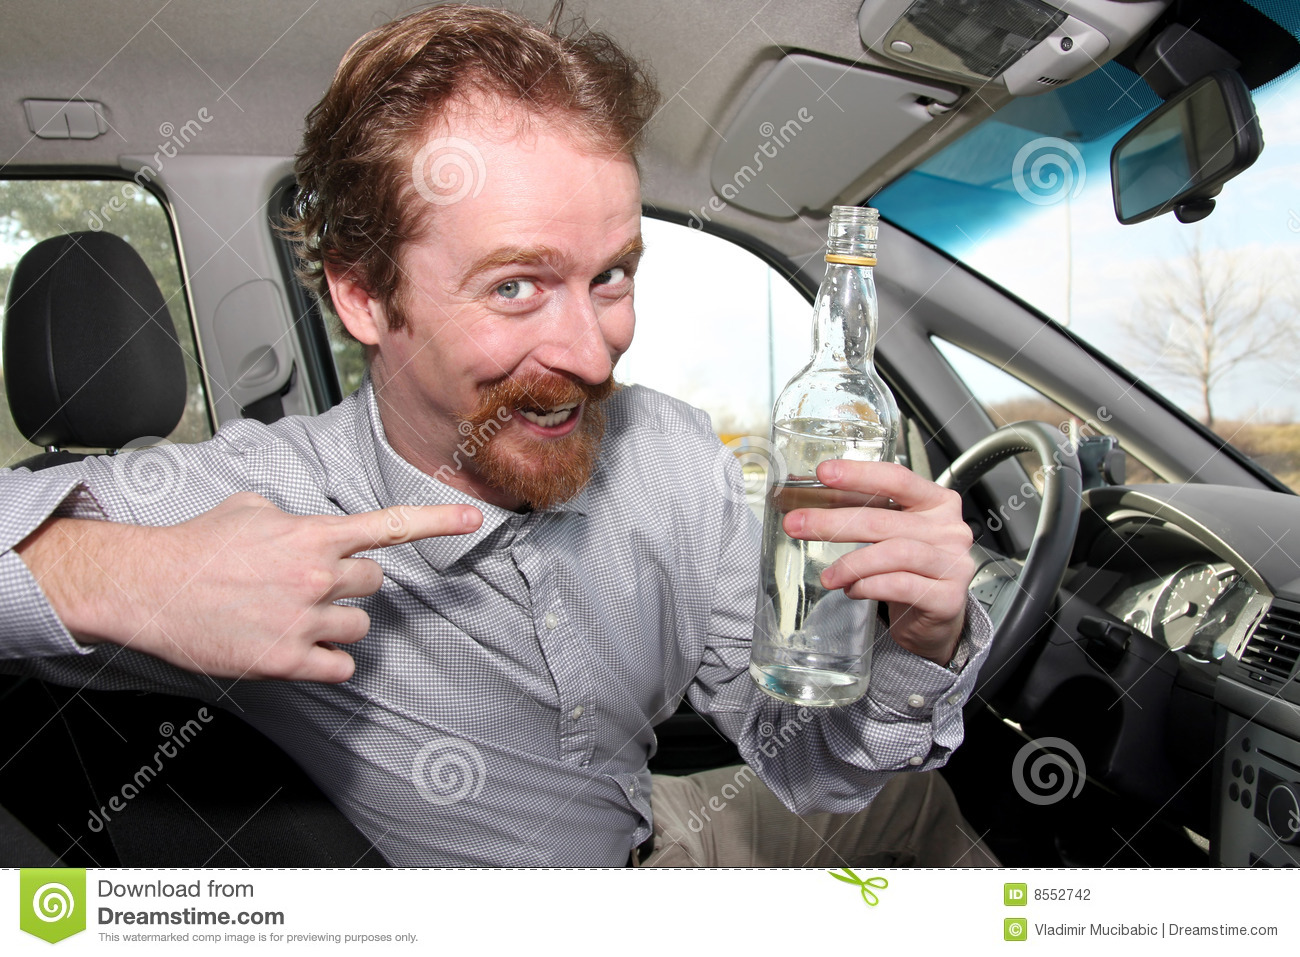 Driver and alcohol stock photography image 8552742 for Designated driver service business plan